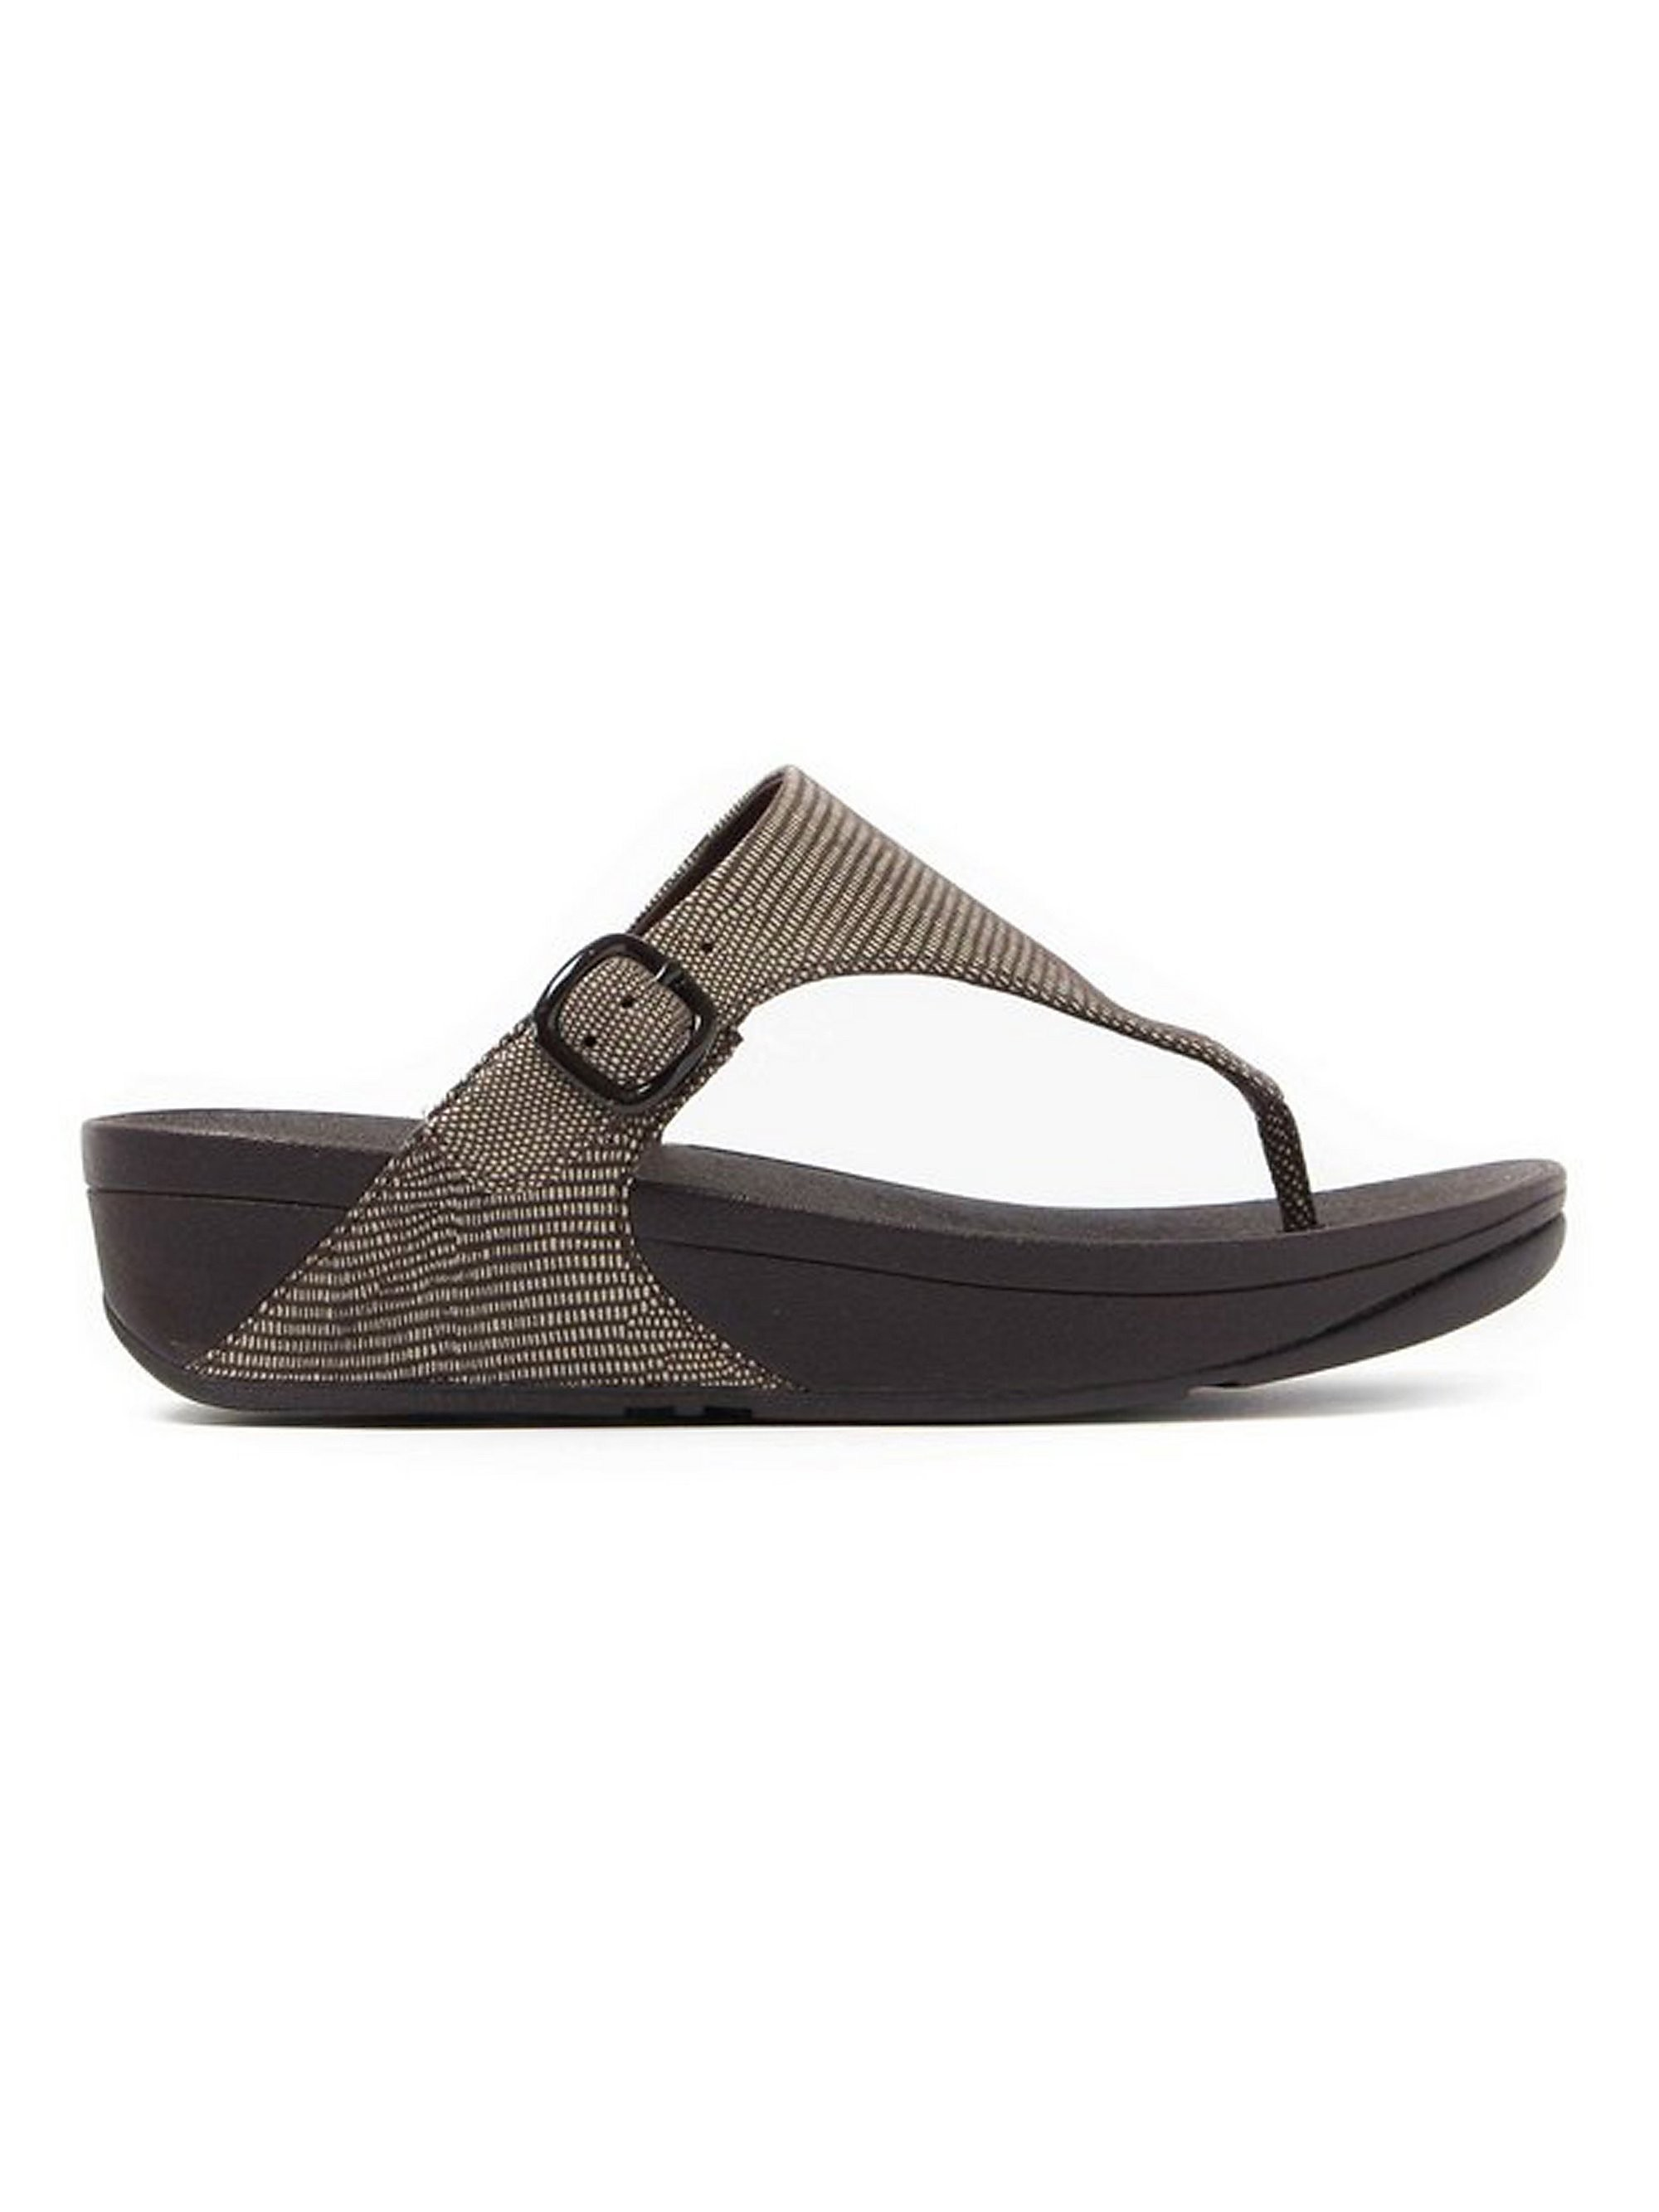 FitFlop Women's The Skinny Lizard Print Toe-Post Sandals - Chocolate Brown